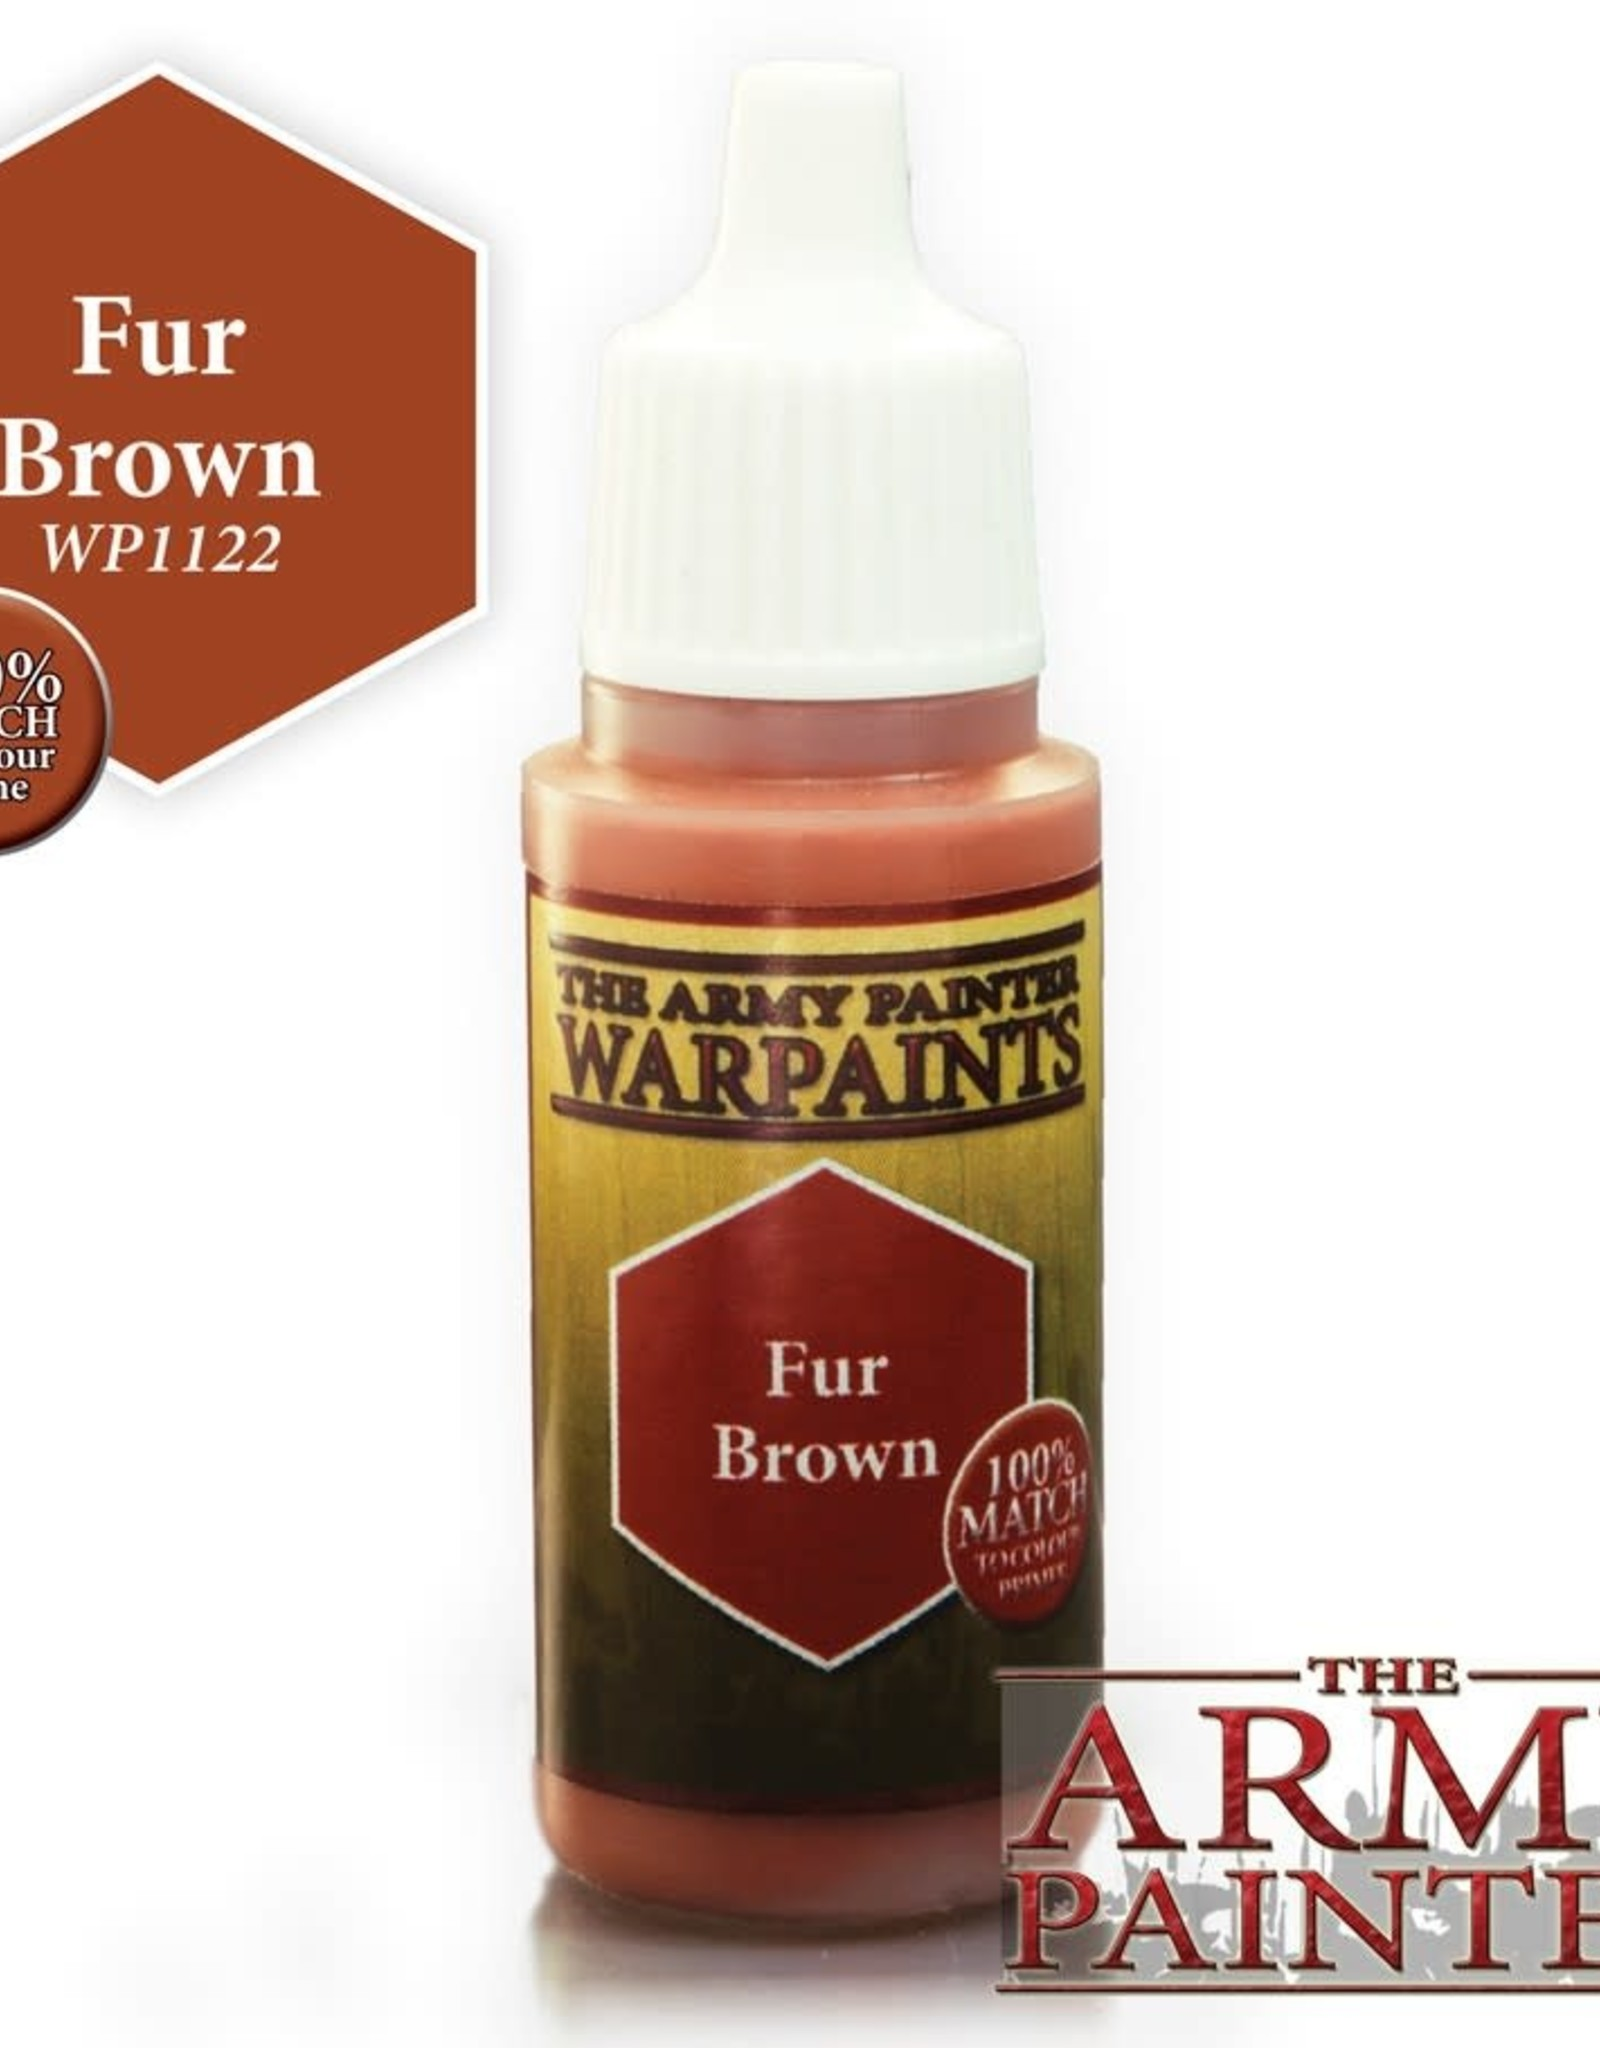 Warpaints: Fur Brown